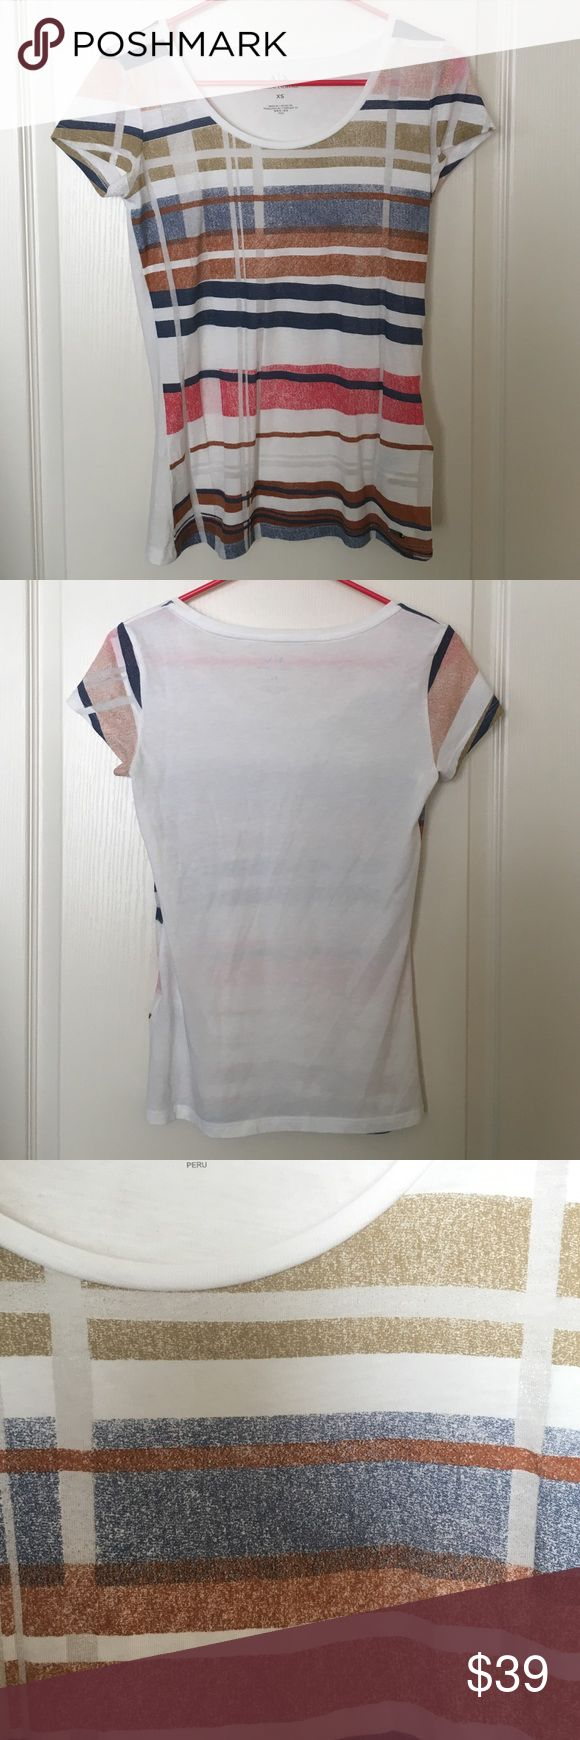 Armani Exchange Tee size XS. Measurements! Armani Exchange Tee size XS. Measurements lying flat armpit to armpit appx 16 inches, top to bottom appx 22.5 inches. A/X Armani Exchange Tops Tees - Short Sleeve